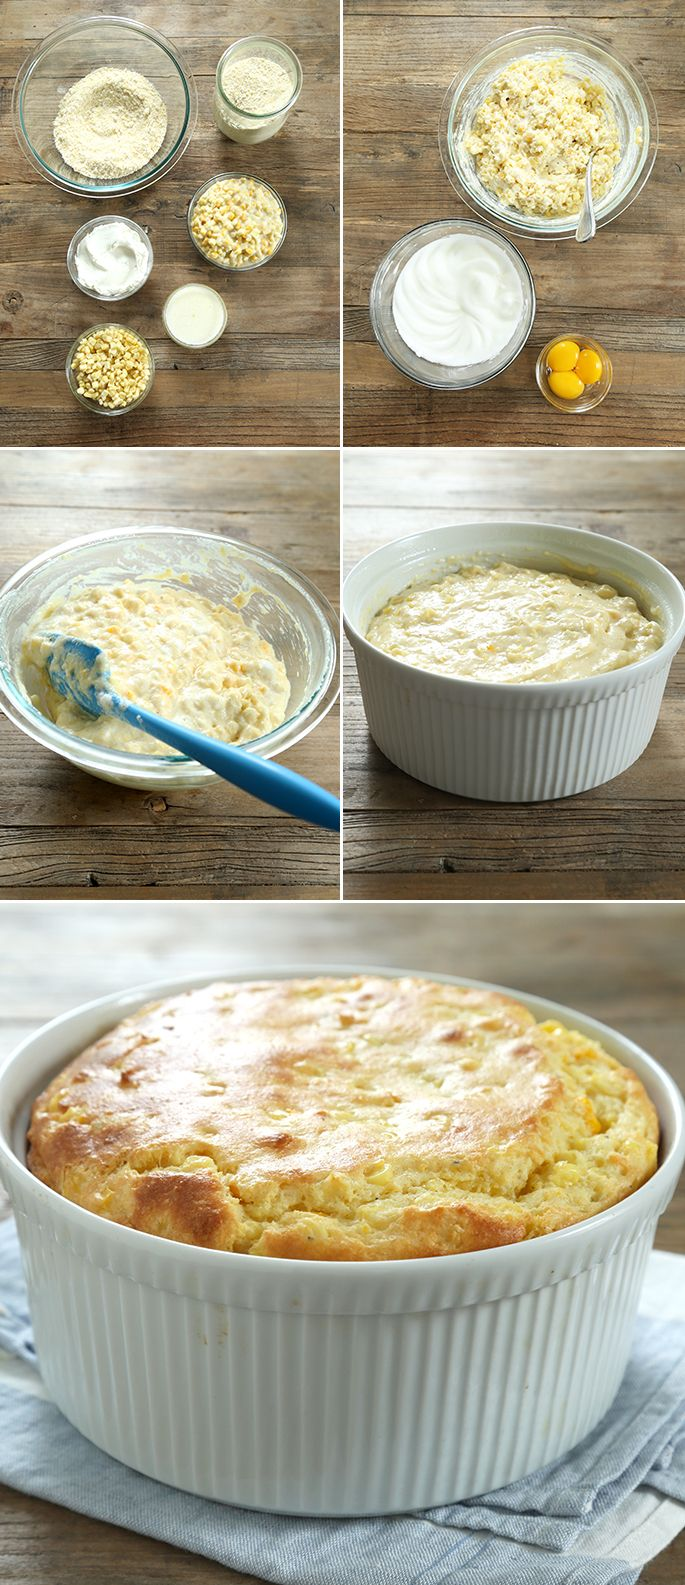 Easy Gluten Free Sweet Corn Spoon Bread, Step by Step. Everyone's favorite side dish!